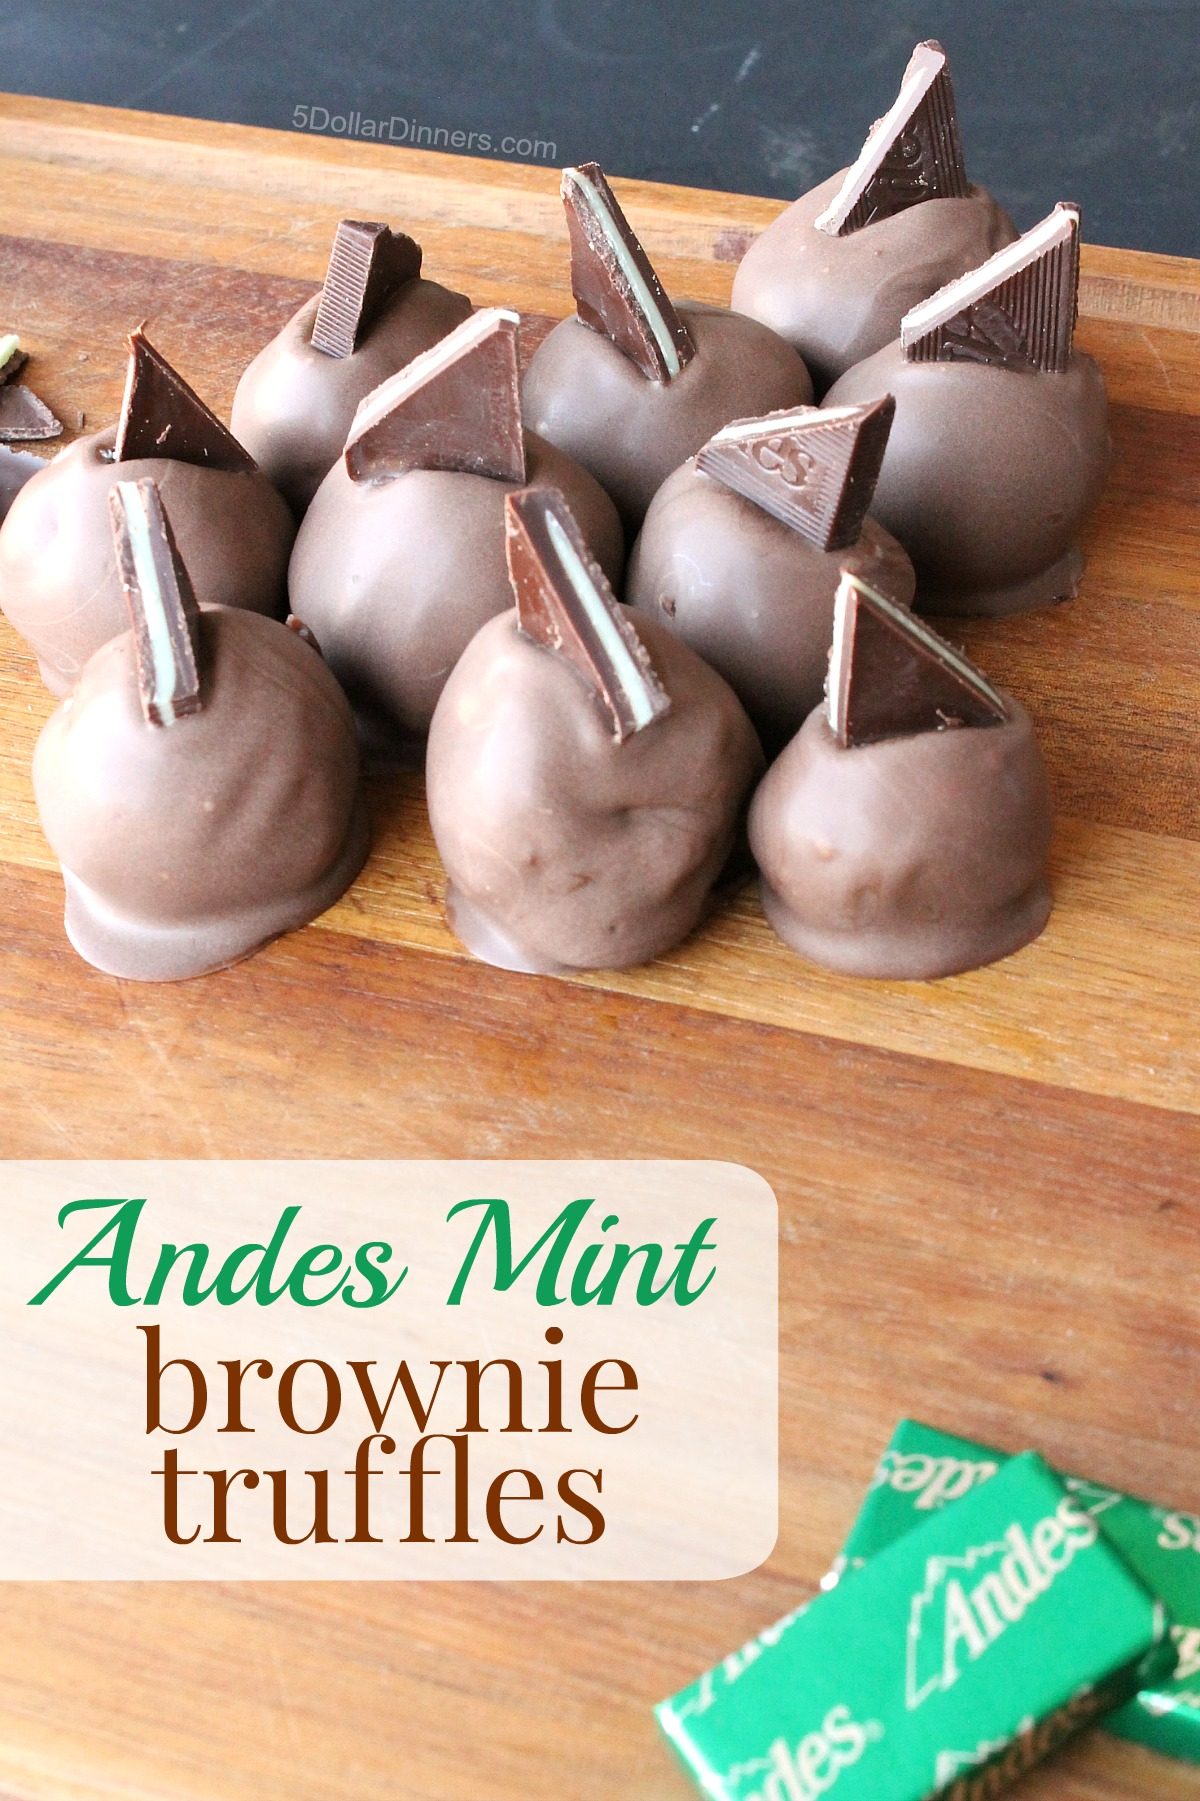 Andes Mint Brownie Truffles from 5DollarDinners.com